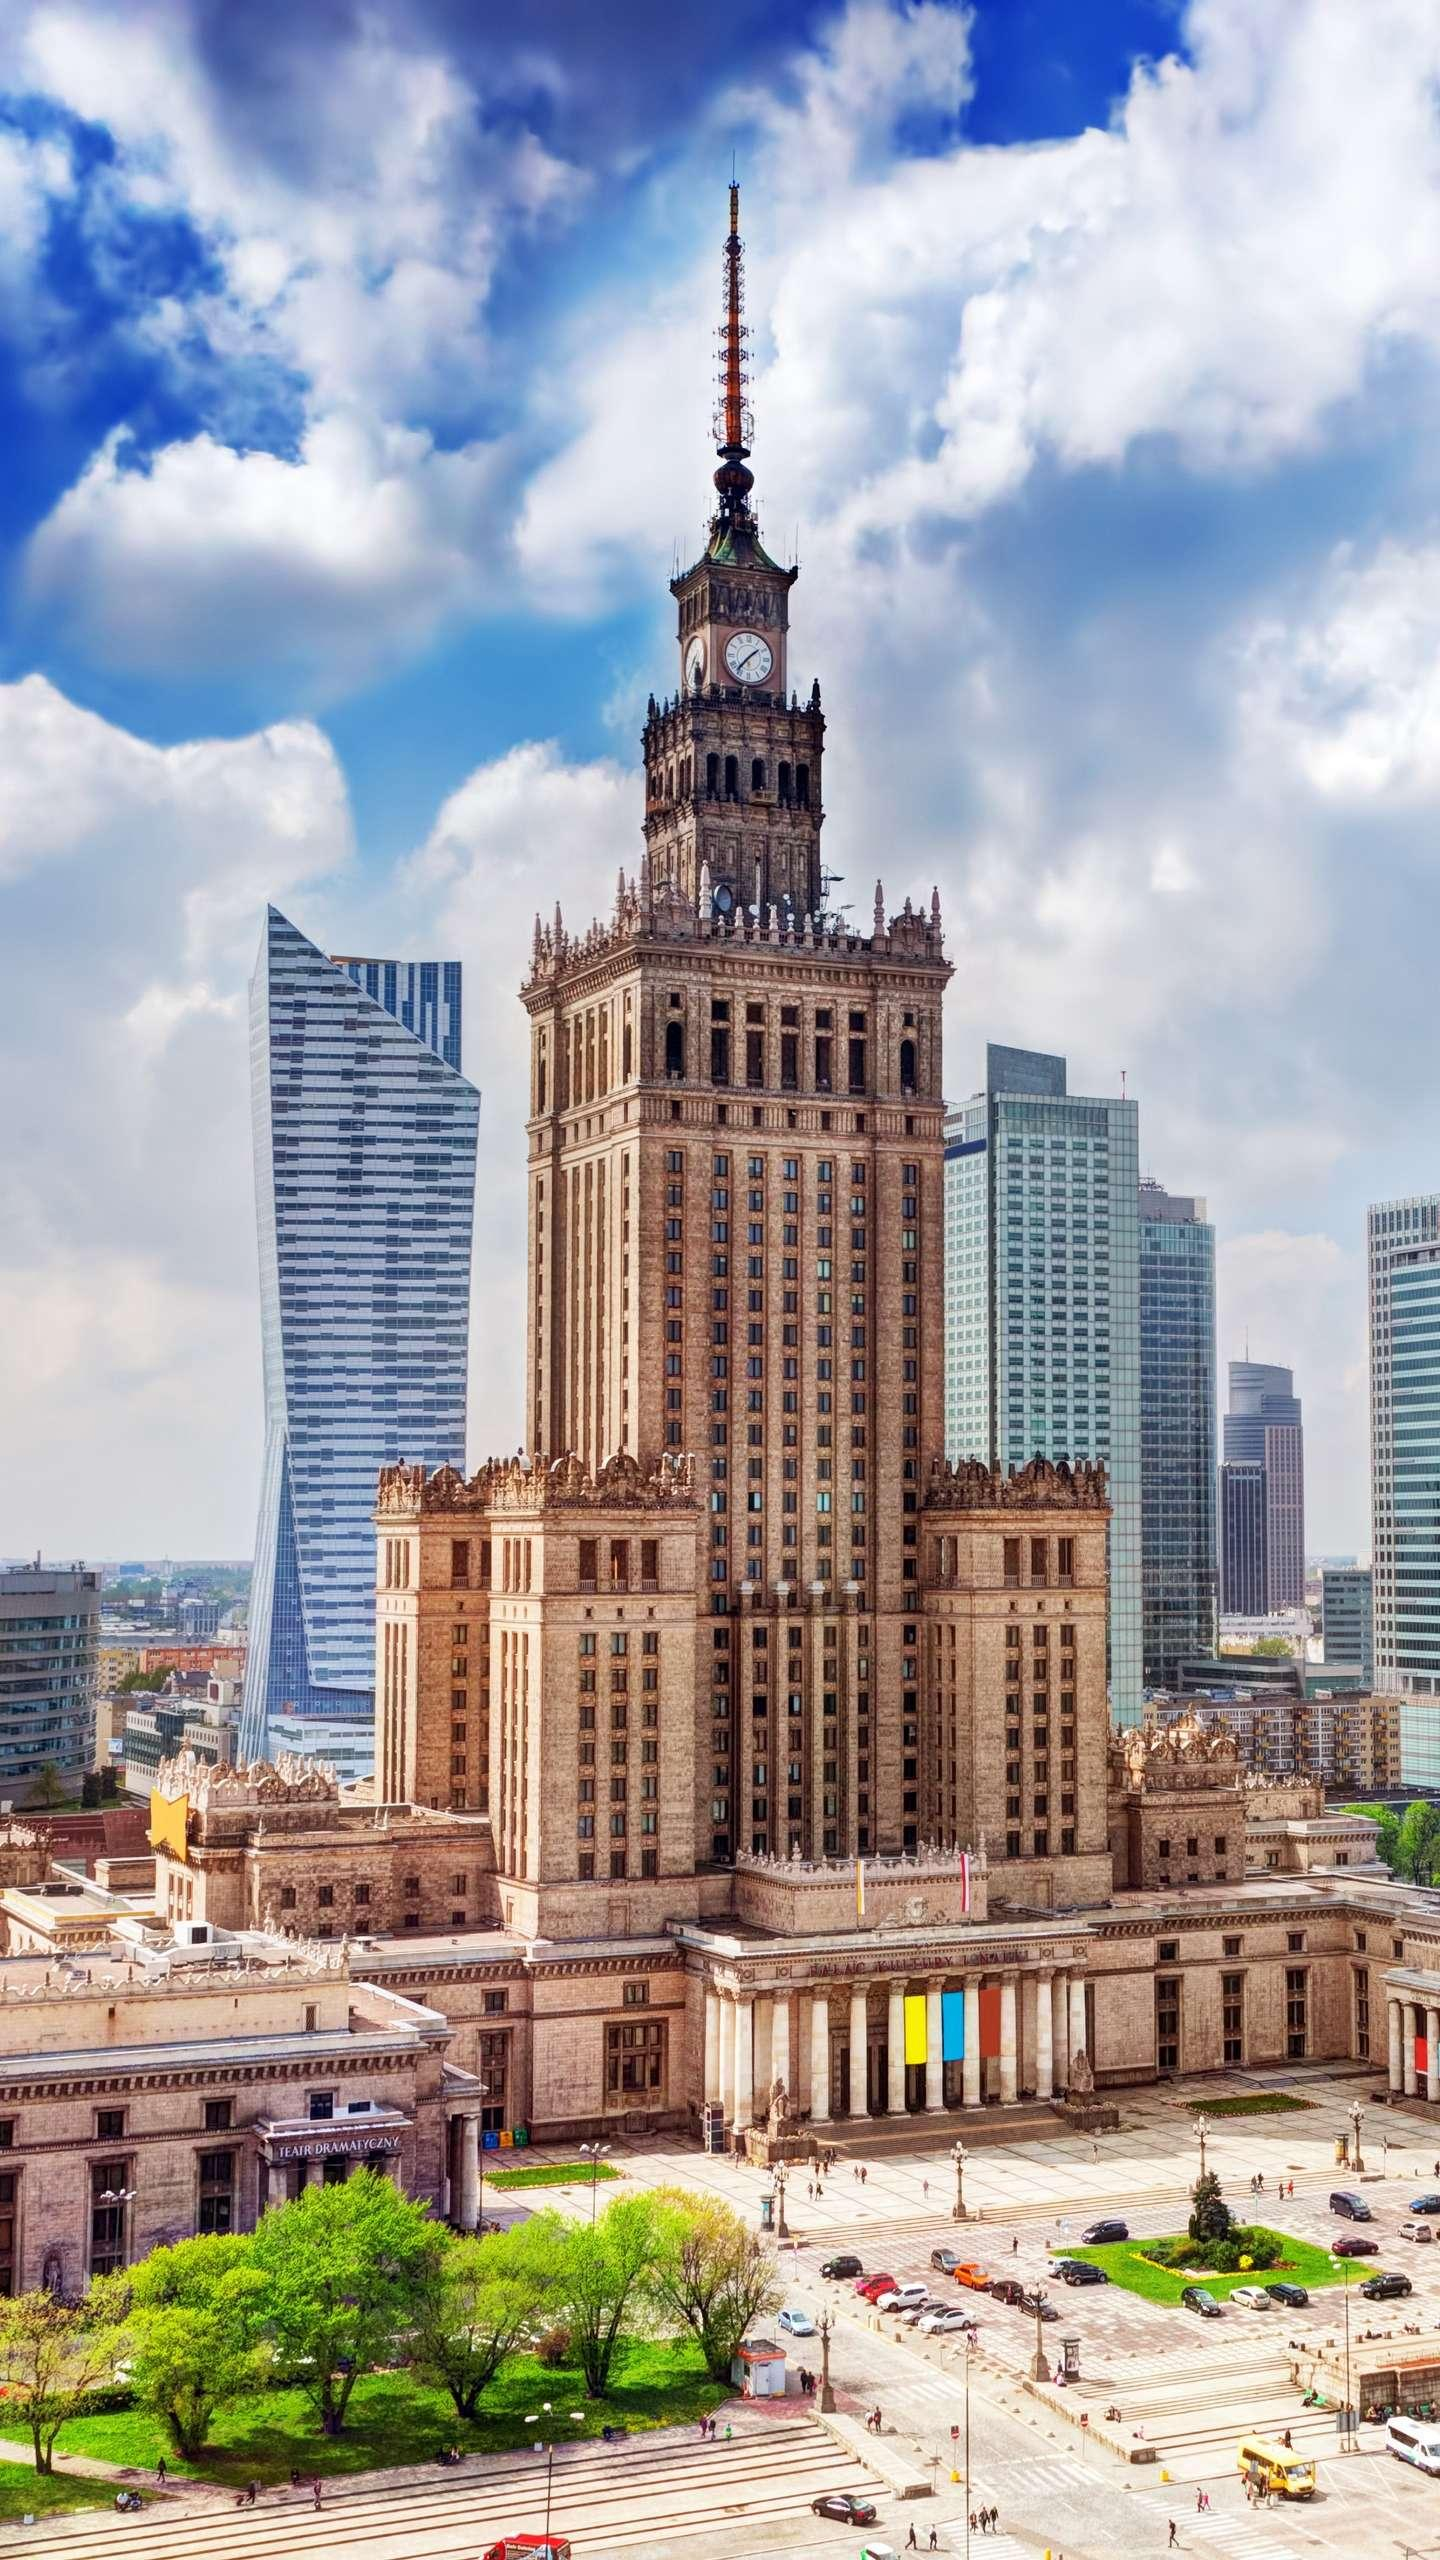 Poland - Warsaw. In order to commemorate a pair of lovers named Walsh and Shawa dare to break through the obstruction, the city was named Warsaw.